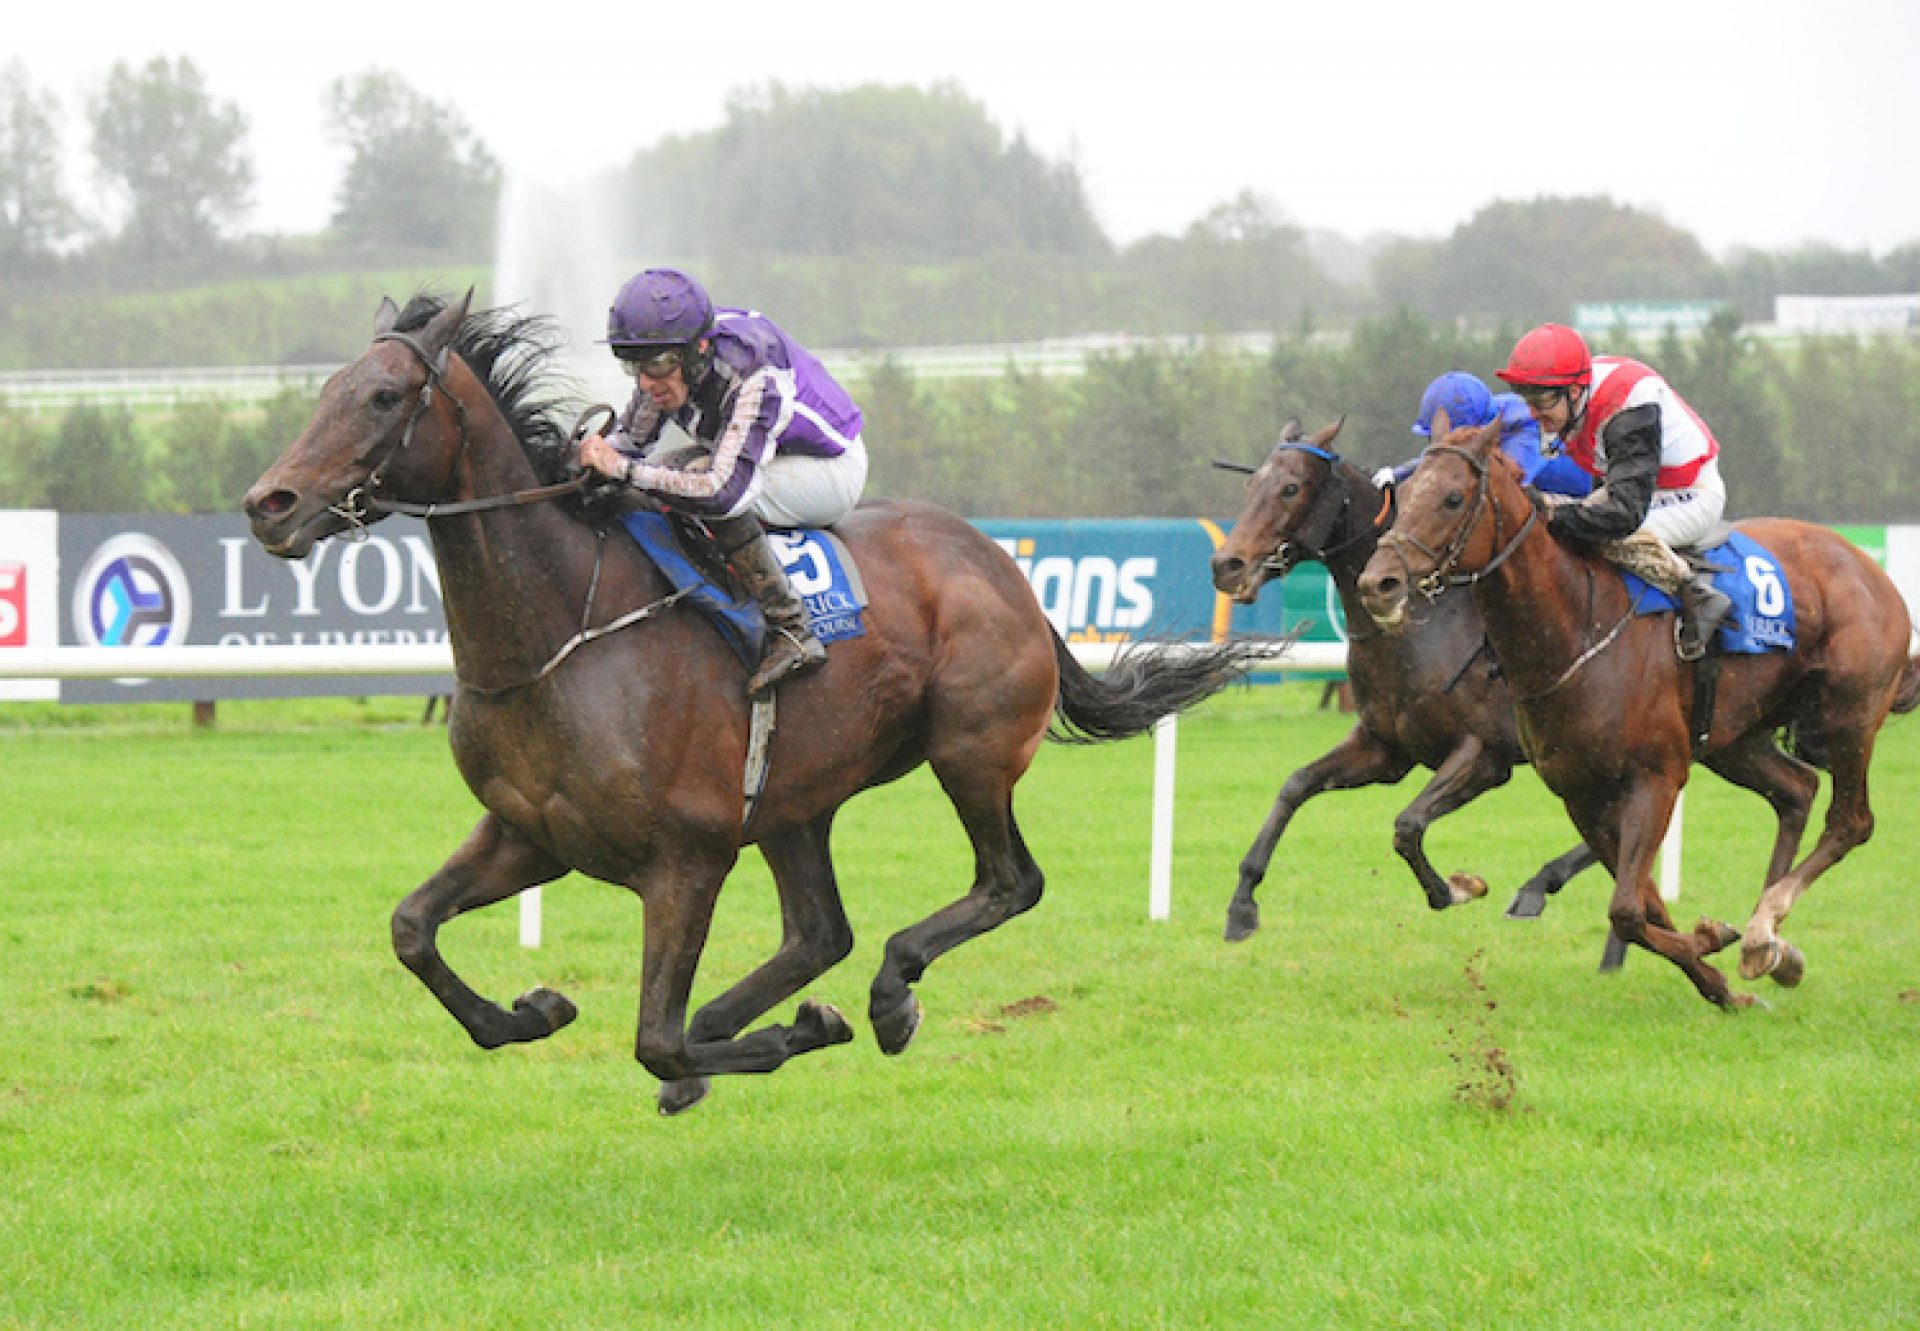 Sir Erec (Camelot) winning the Listed Martin Moloney Stakes at Limerick